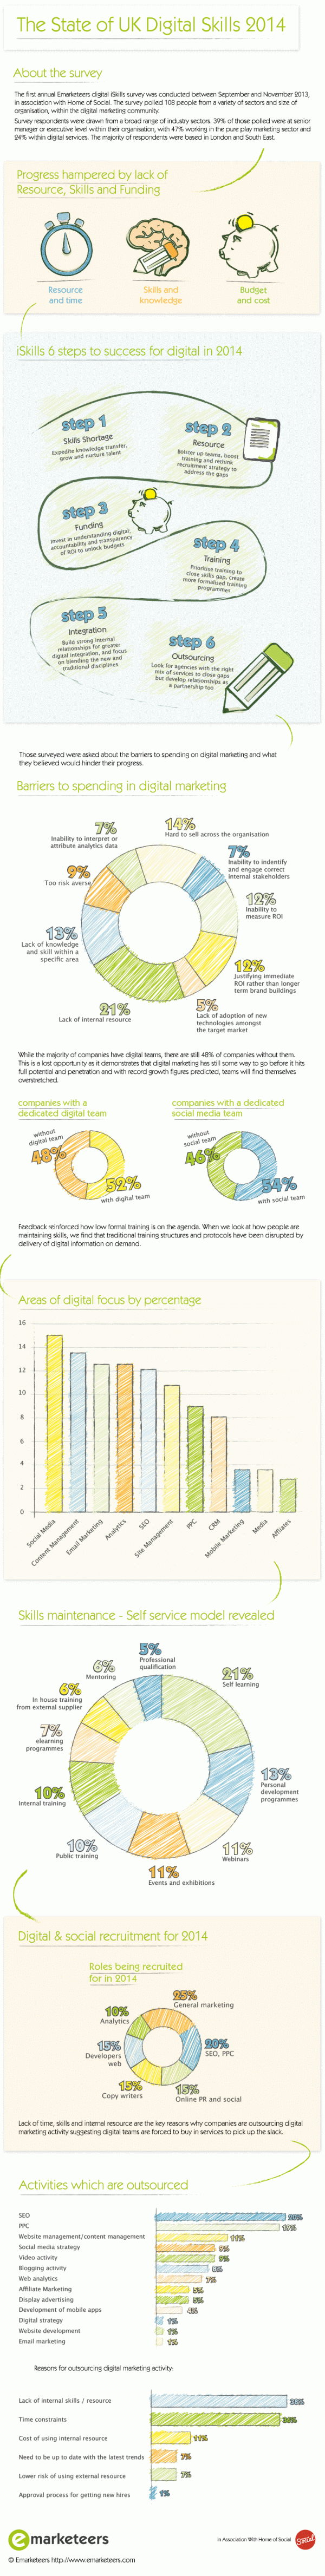 State of UK Digital Skills Infographic